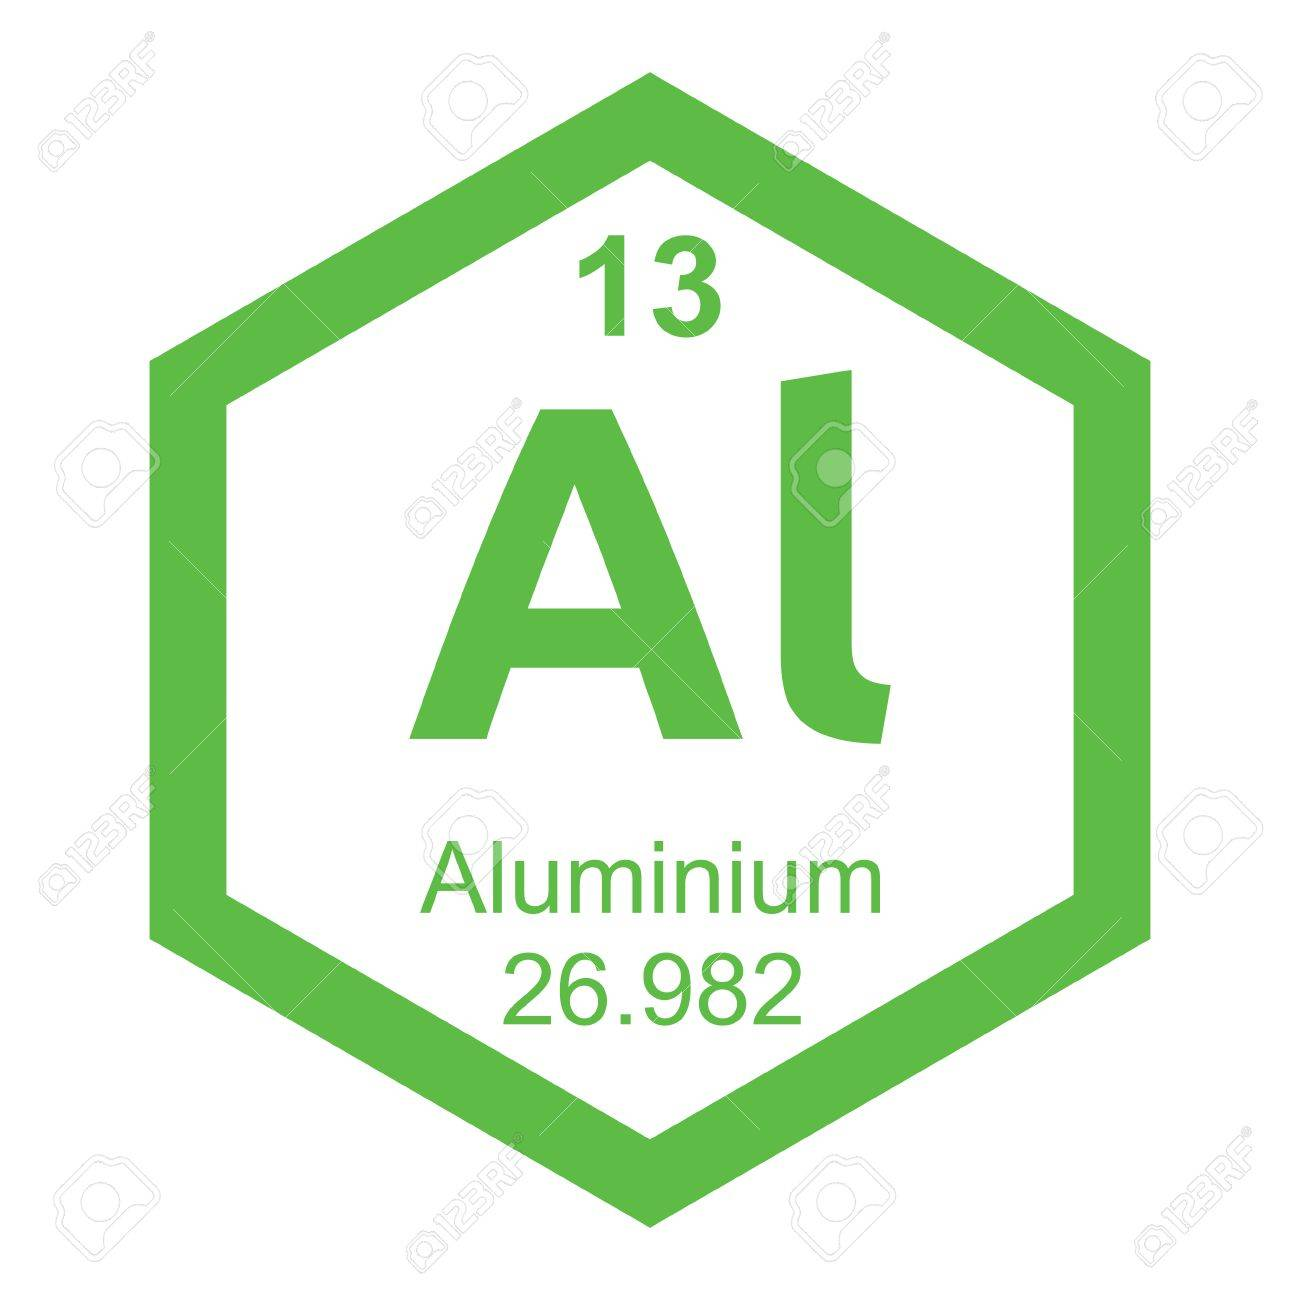 Periodic table symbol for aluminum gallery periodic table images aluminum periodic table facts images periodic table images aluminium periodic table aviongoldcorp periodic table aluminium royalty gamestrikefo Image collections